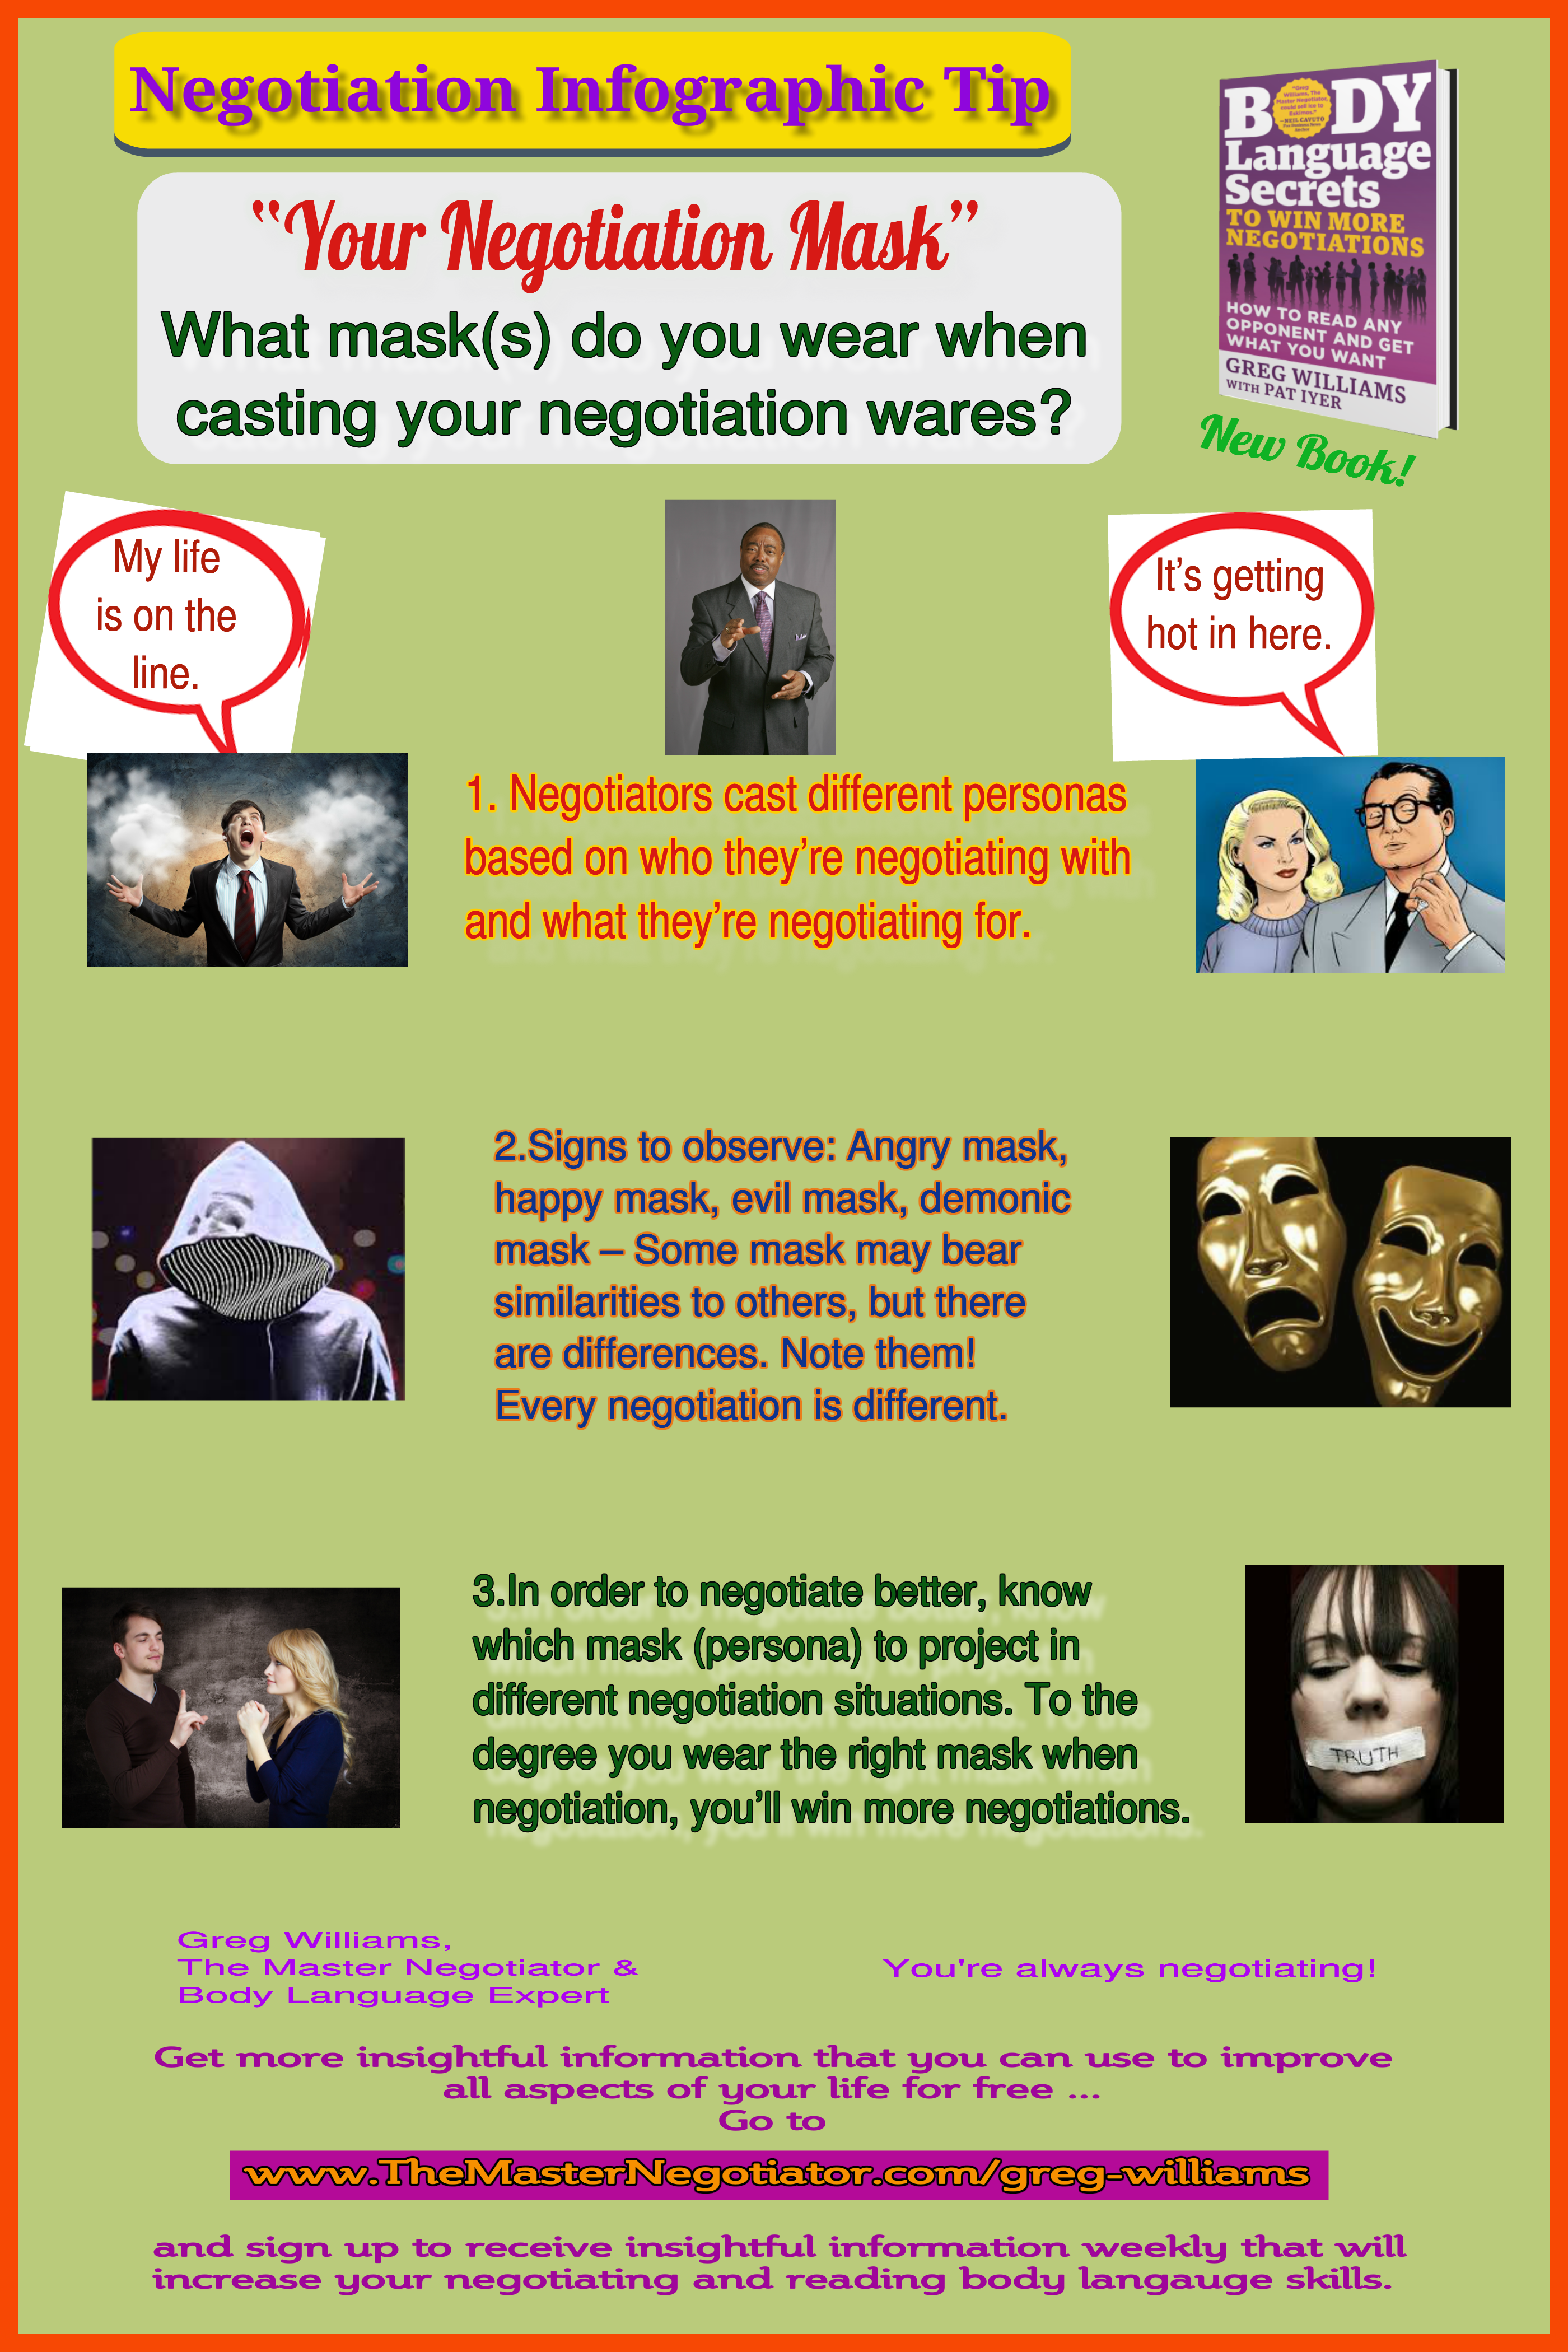 Your Negotiation Mask